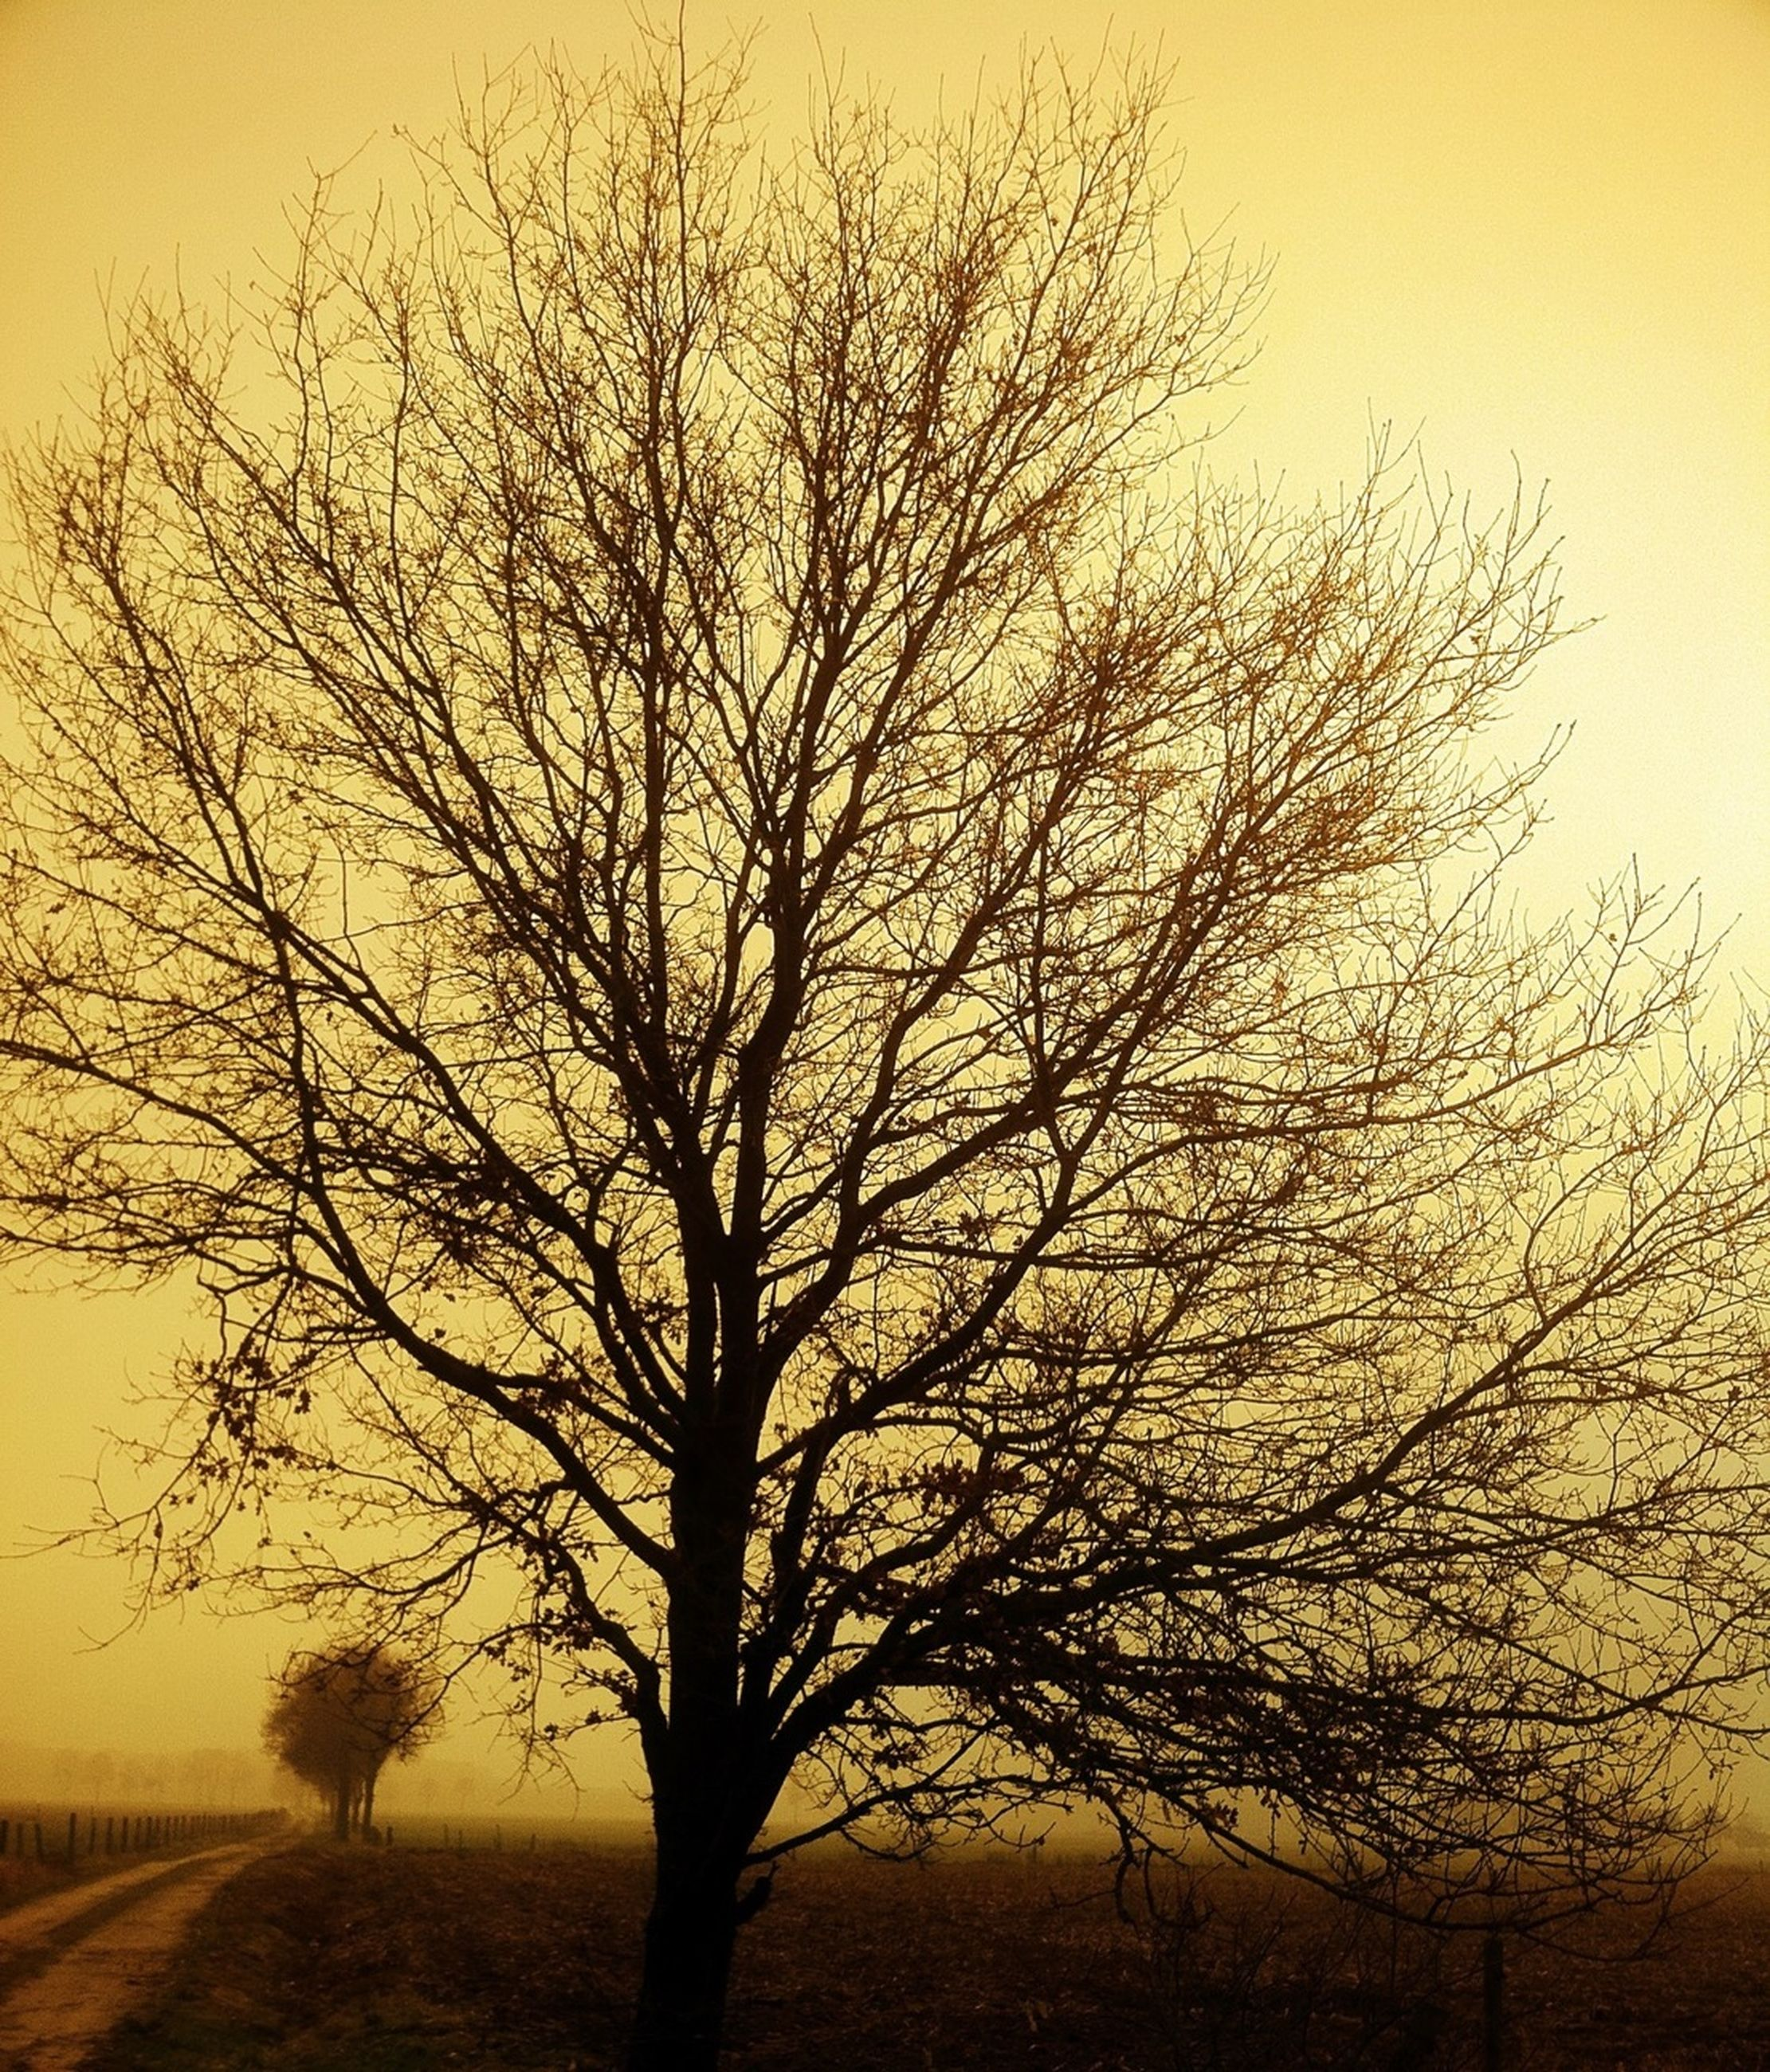 bare tree, sunset, tree, branch, silhouette, tranquility, tranquil scene, landscape, scenics, nature, beauty in nature, field, clear sky, tree trunk, sky, orange color, outdoors, non-urban scene, no people, idyllic